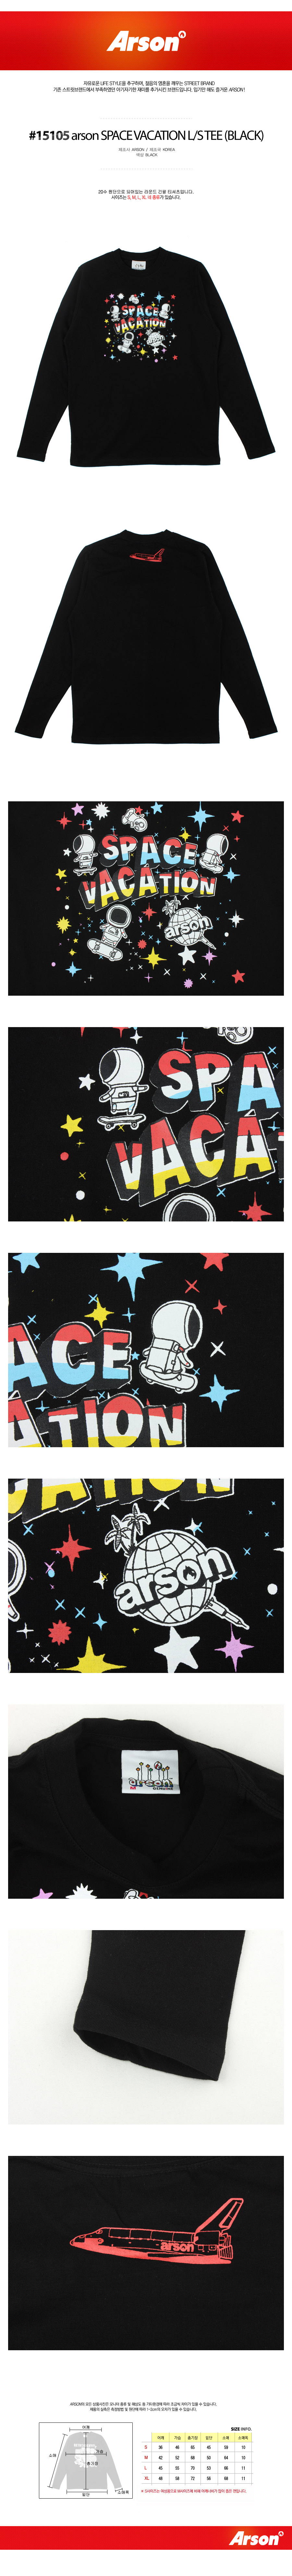 [ ARSON ] [ARSON] 15105 SPACE VACATION longsleeved tshirt